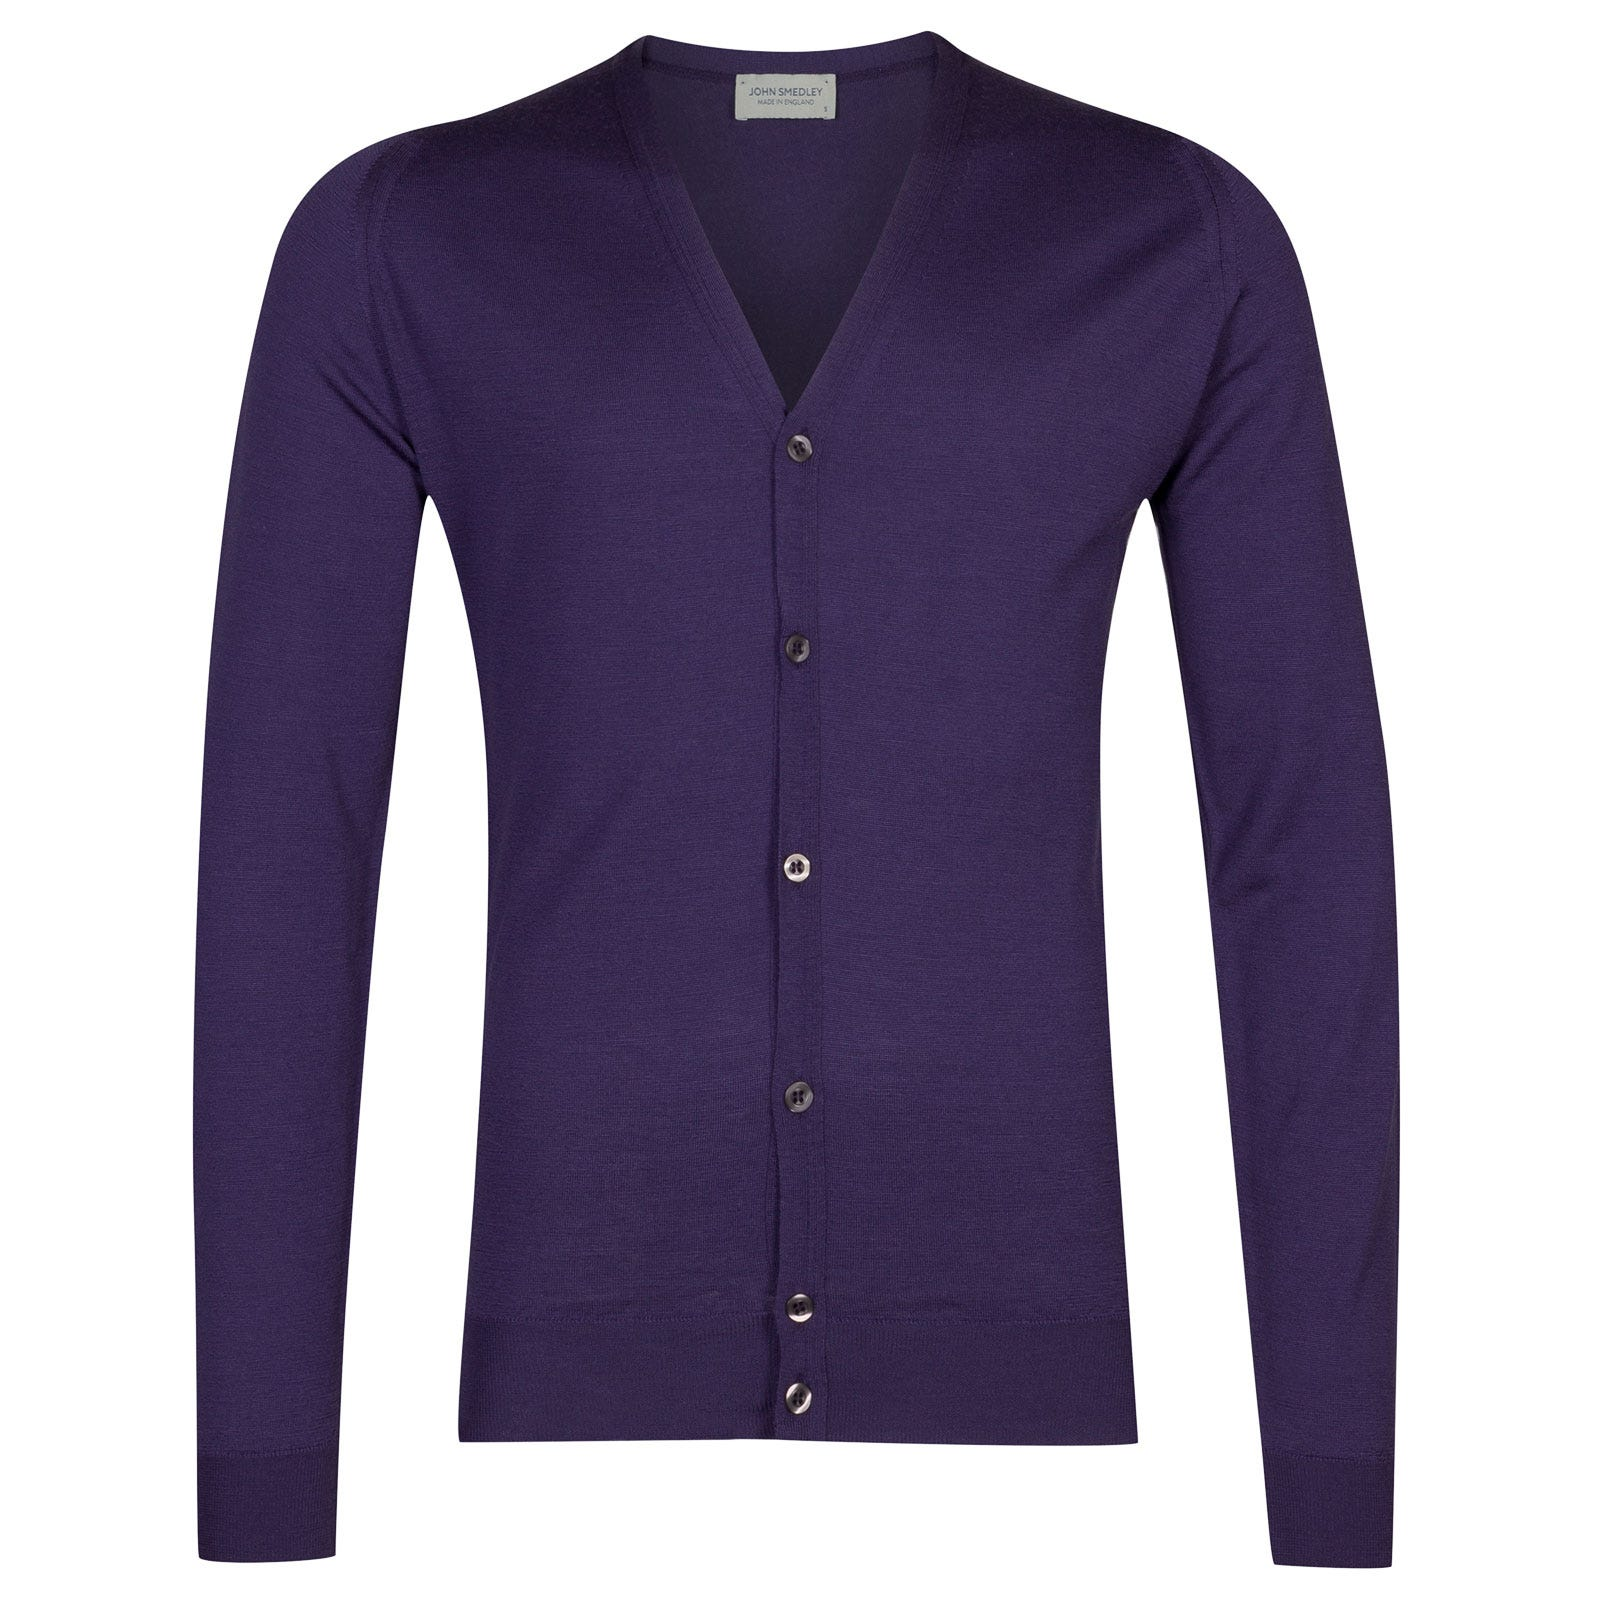 John Smedley petworth Merino Wool Cardigan in Elderberry Purple-XXL